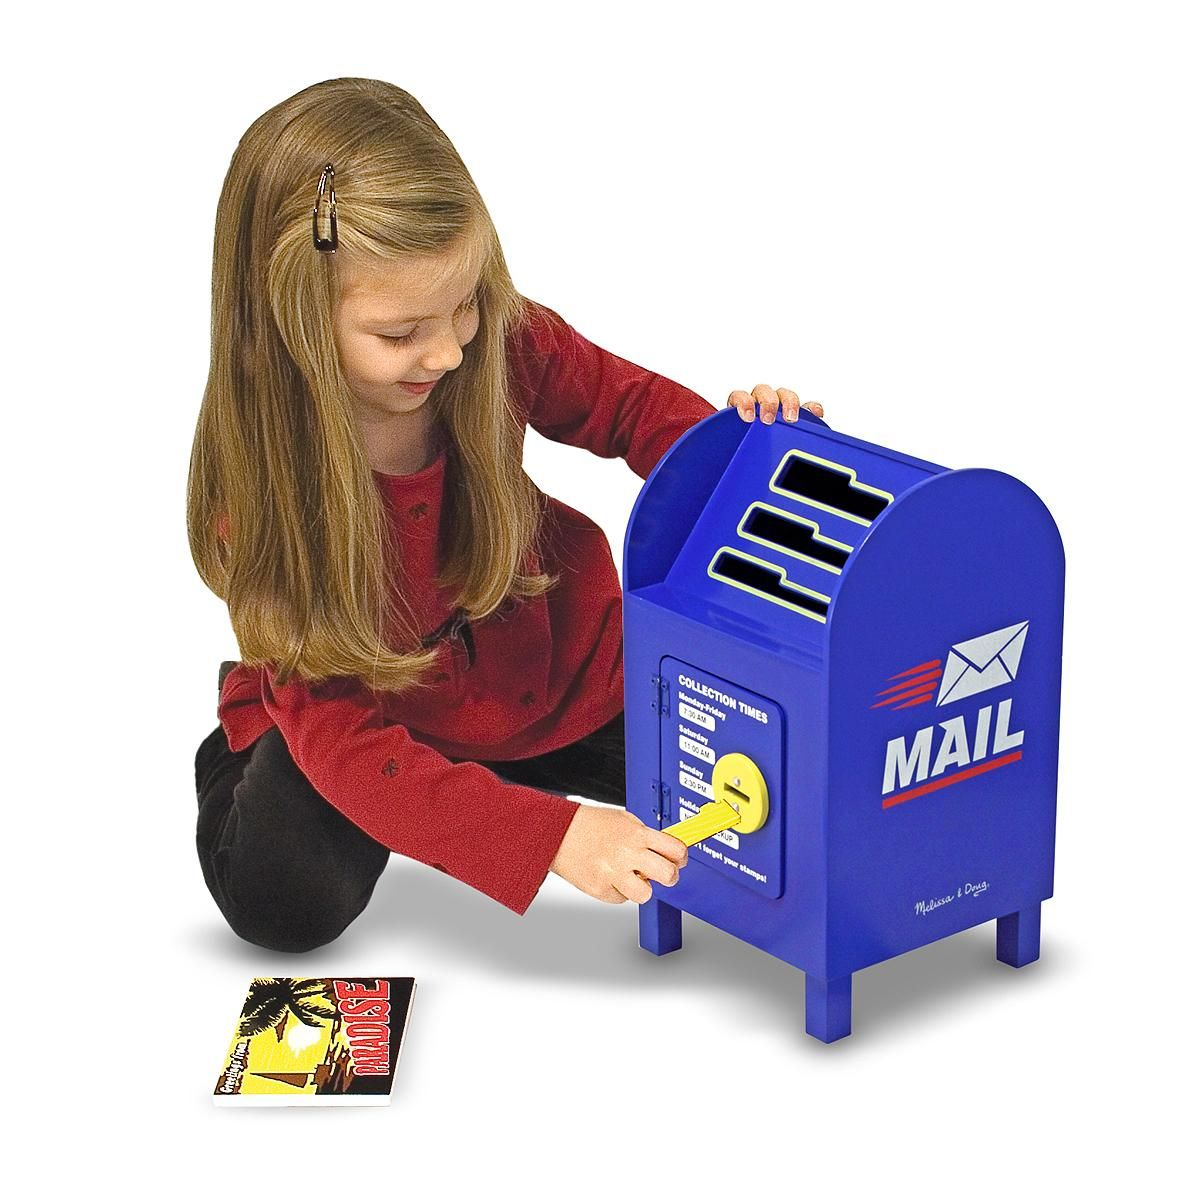 Post Office Toy For 3 Year Old Boy Preschool Letters